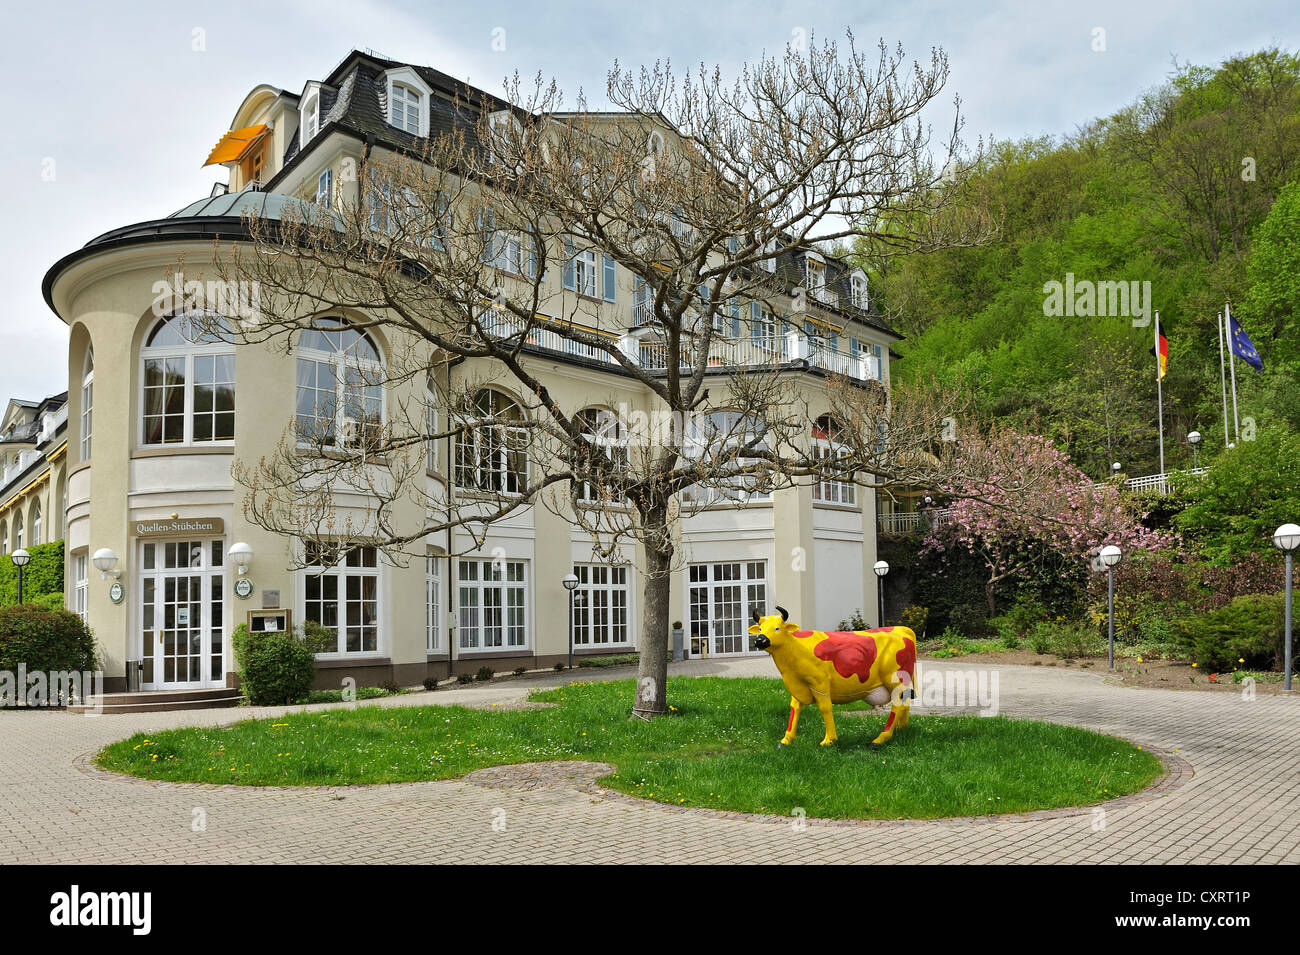 Colourfully painted cow statue in front of the Parkhotel, Schlangenbad, Hesse, Germany, Europe - Stock Image